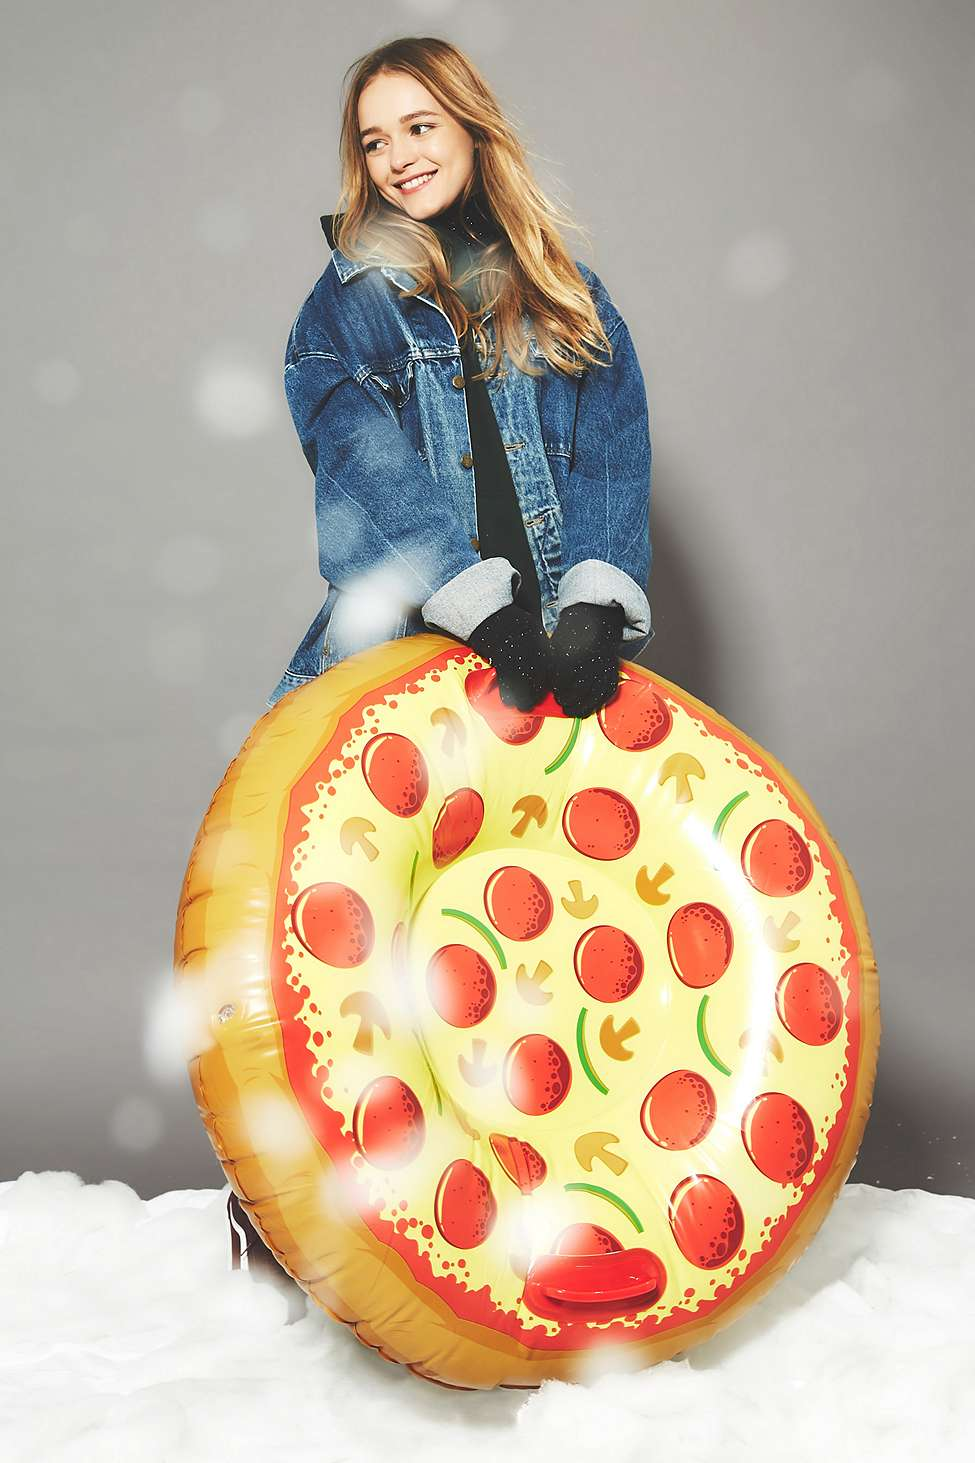 pizza-nieve